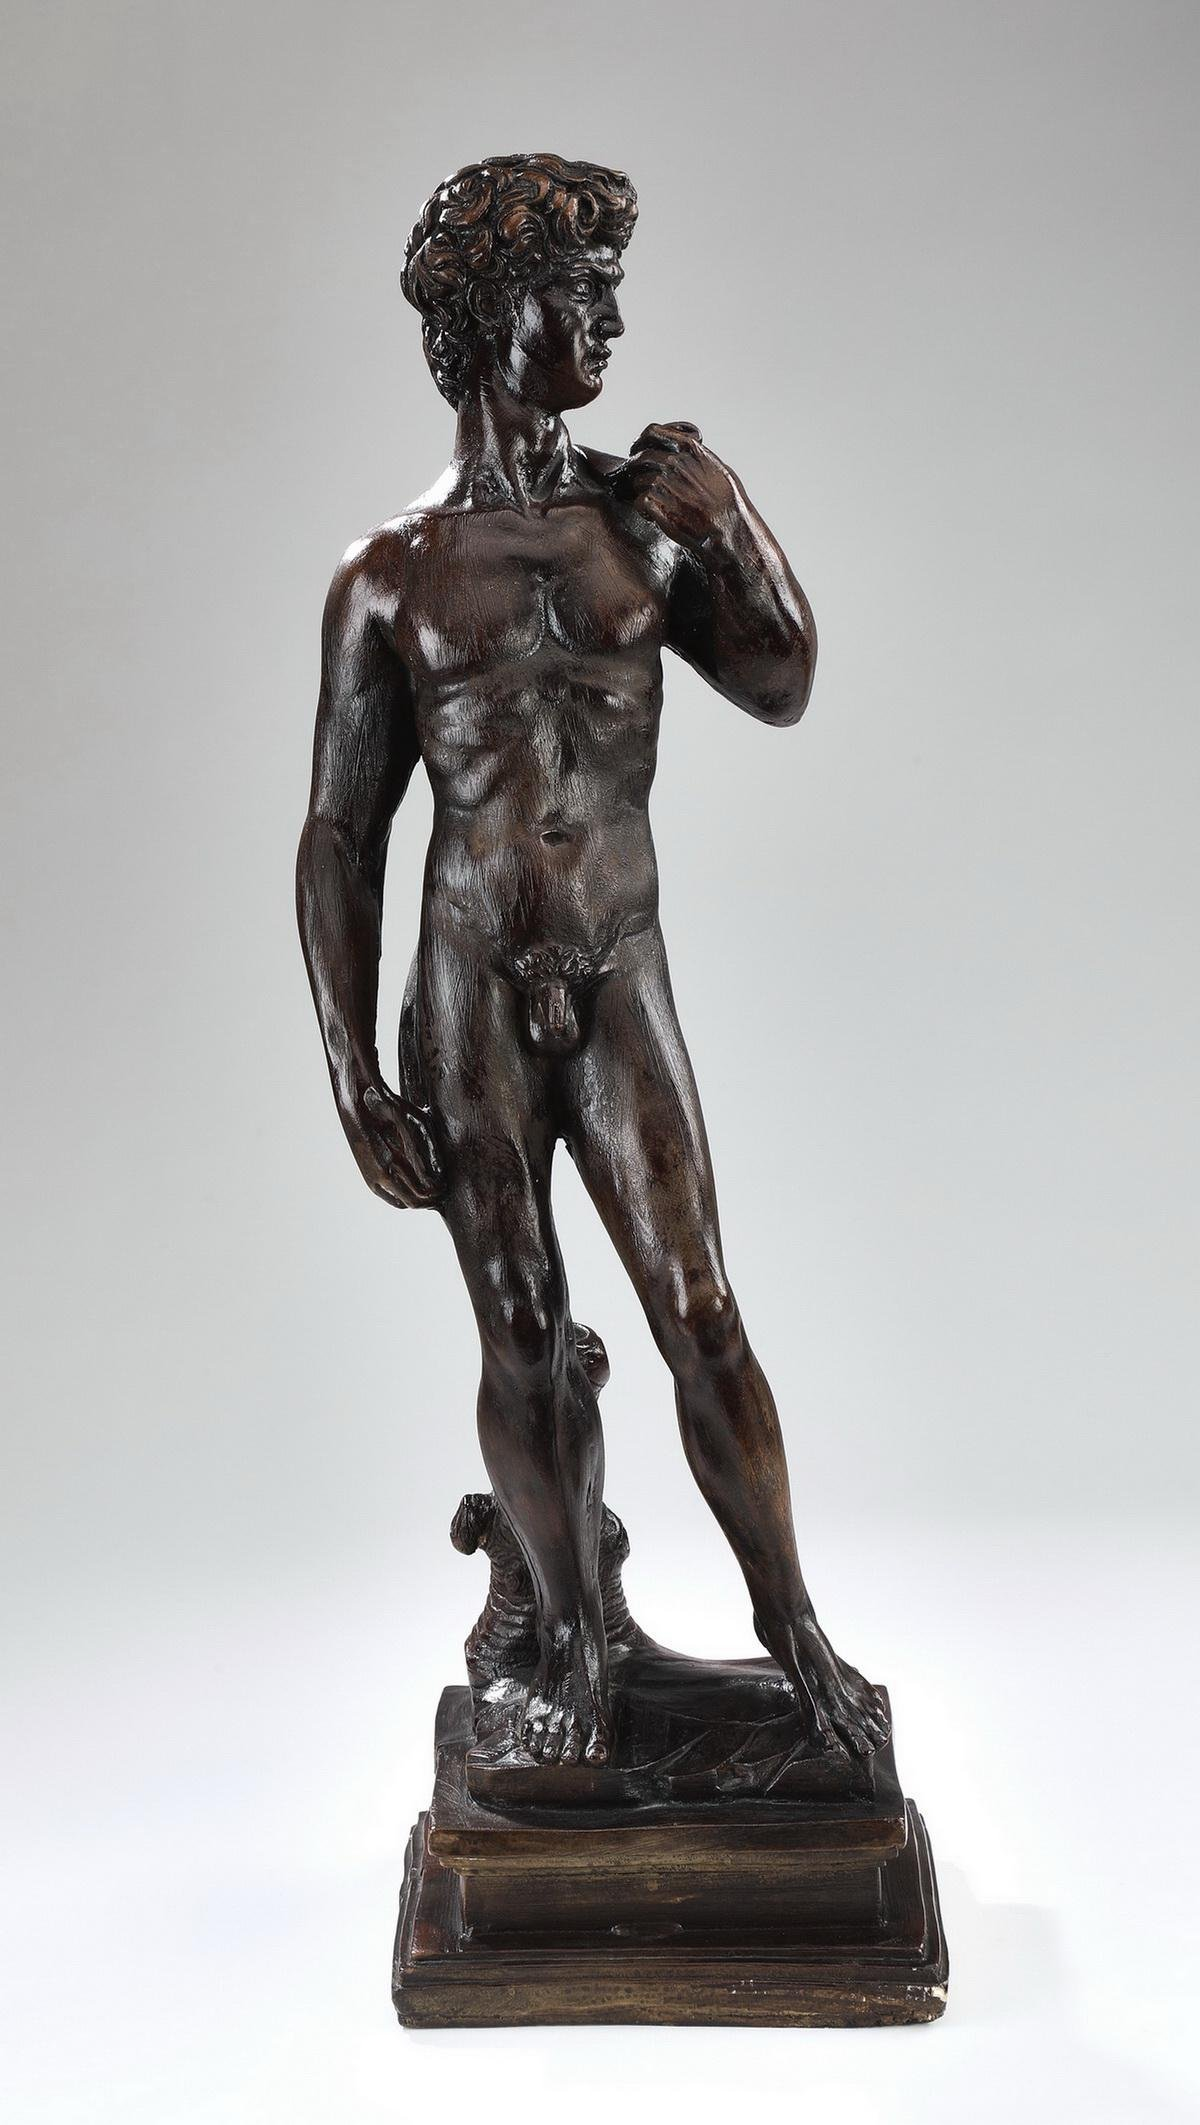 "After 'David' by Michelangelo, 27""h"